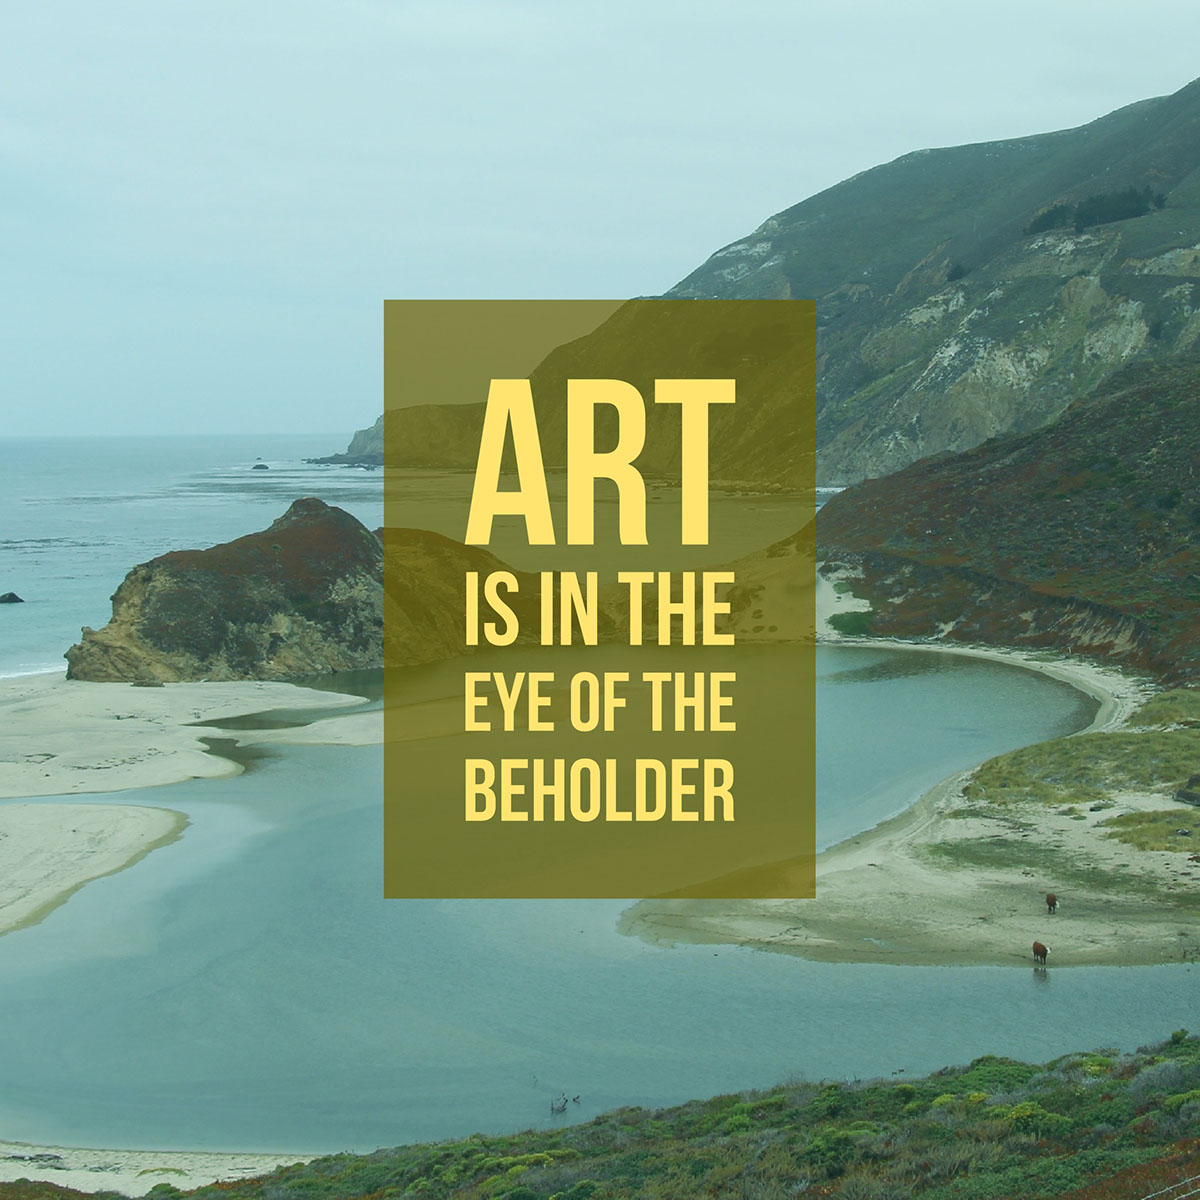 Art is in the eye of the beholder